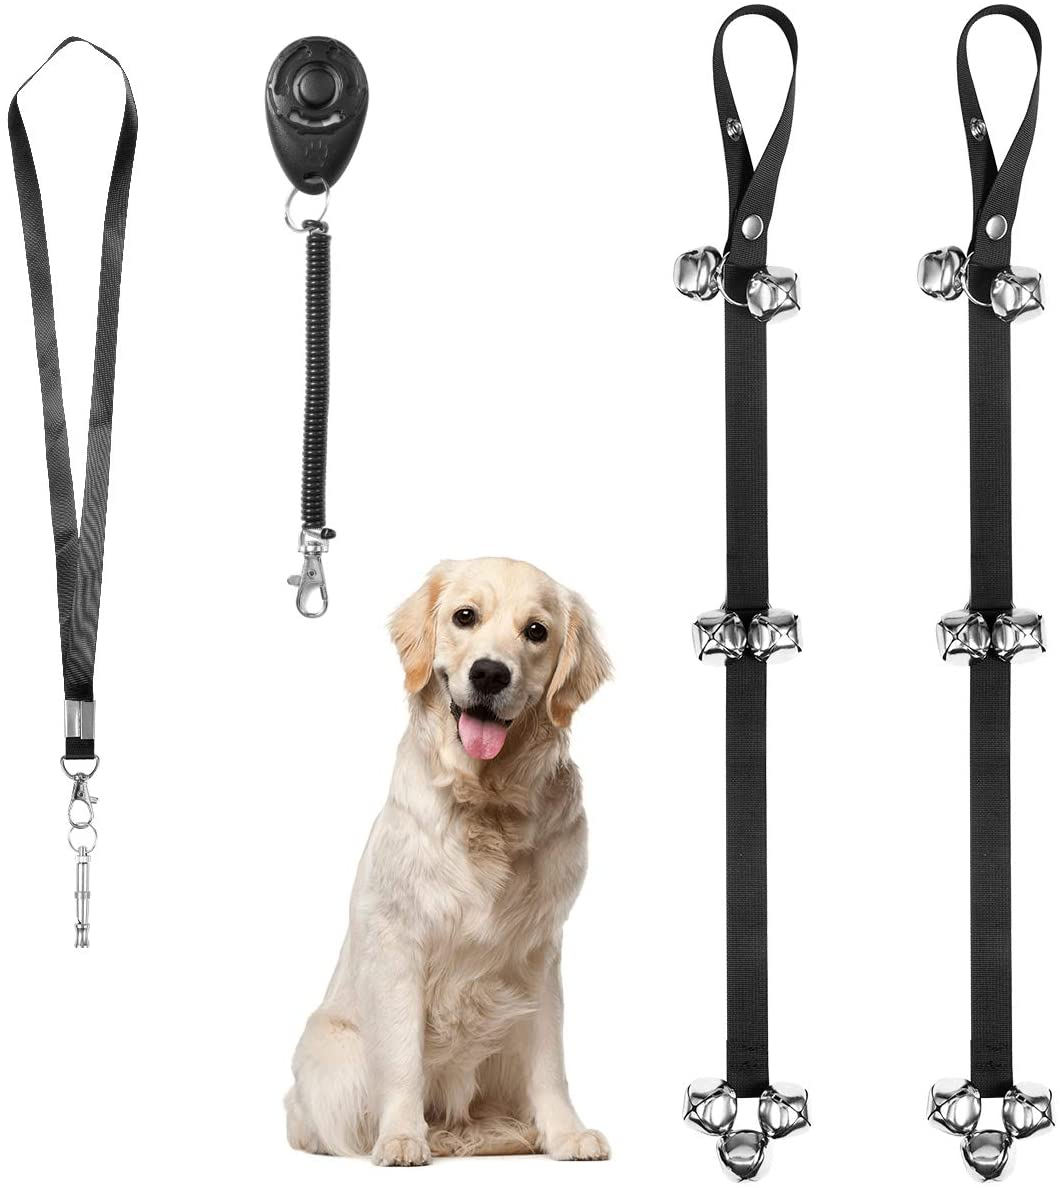 Haokaini Pet Dog Training Set Adjustable Dog Doorbells Premium Quality Training Clicker Whistle for Puppies Dogs Doggy Doggie Pooch Pet Cat